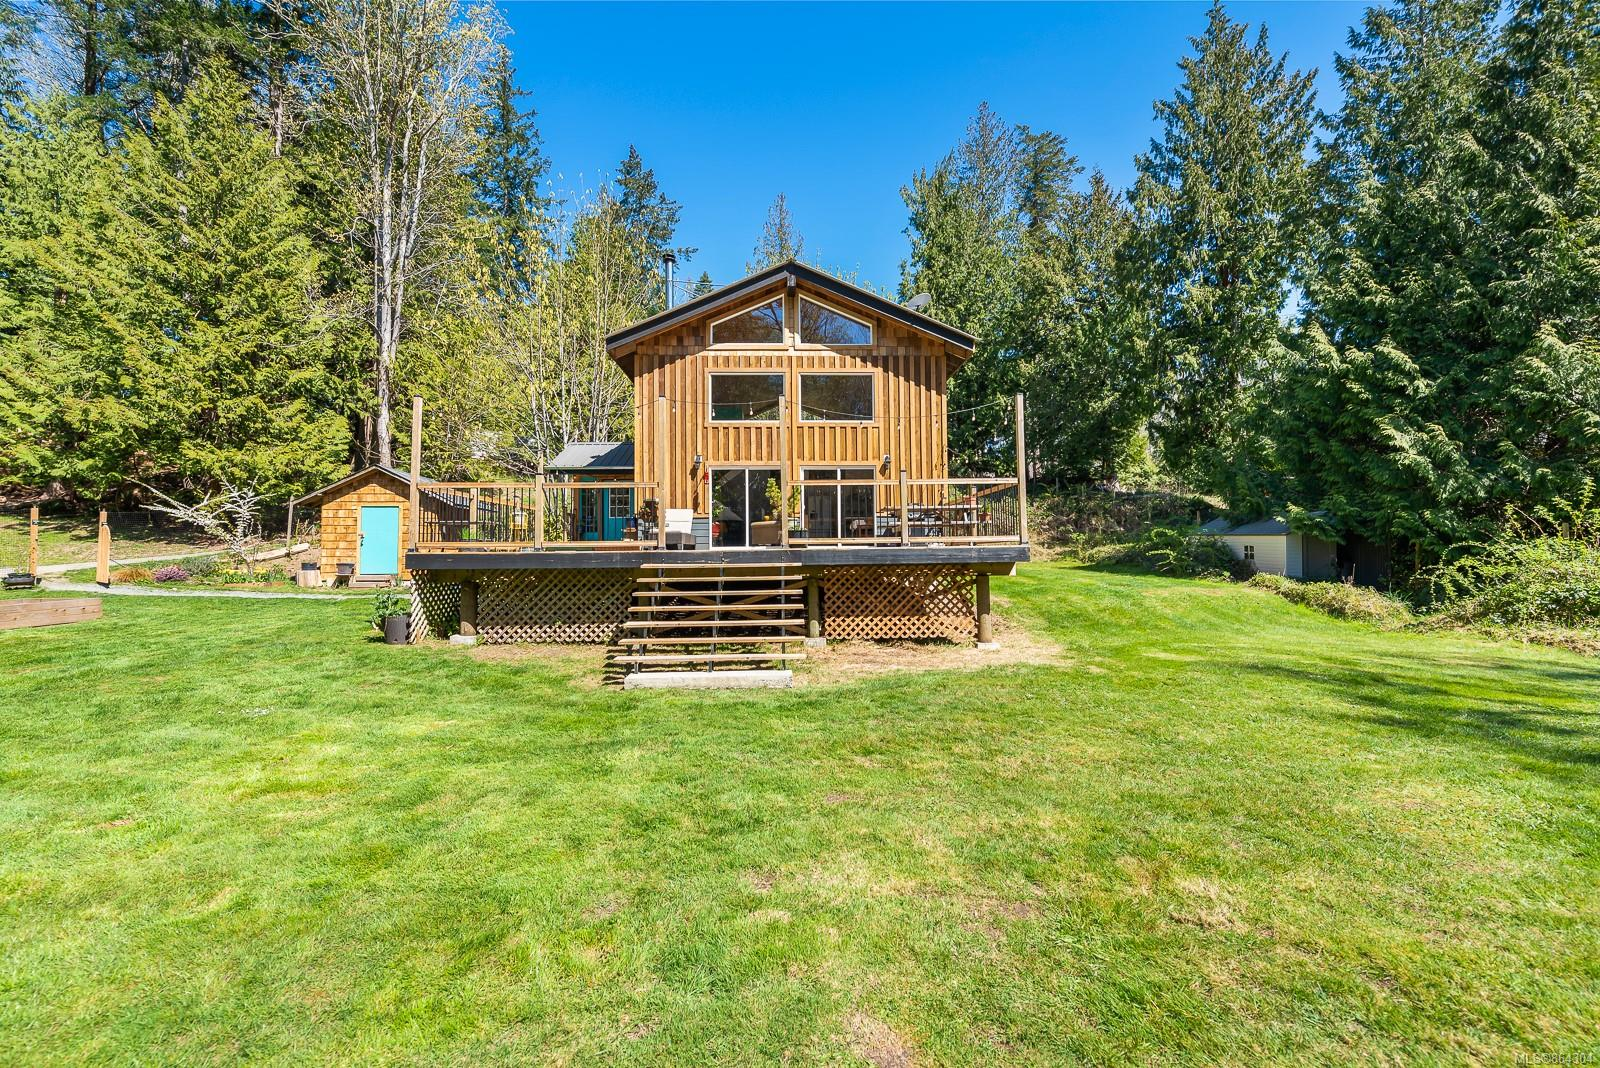 Isl Hornby Island Single Family Detached for sale:  3 bedroom 1,289 sq.ft. (Listed 2021-02-24)